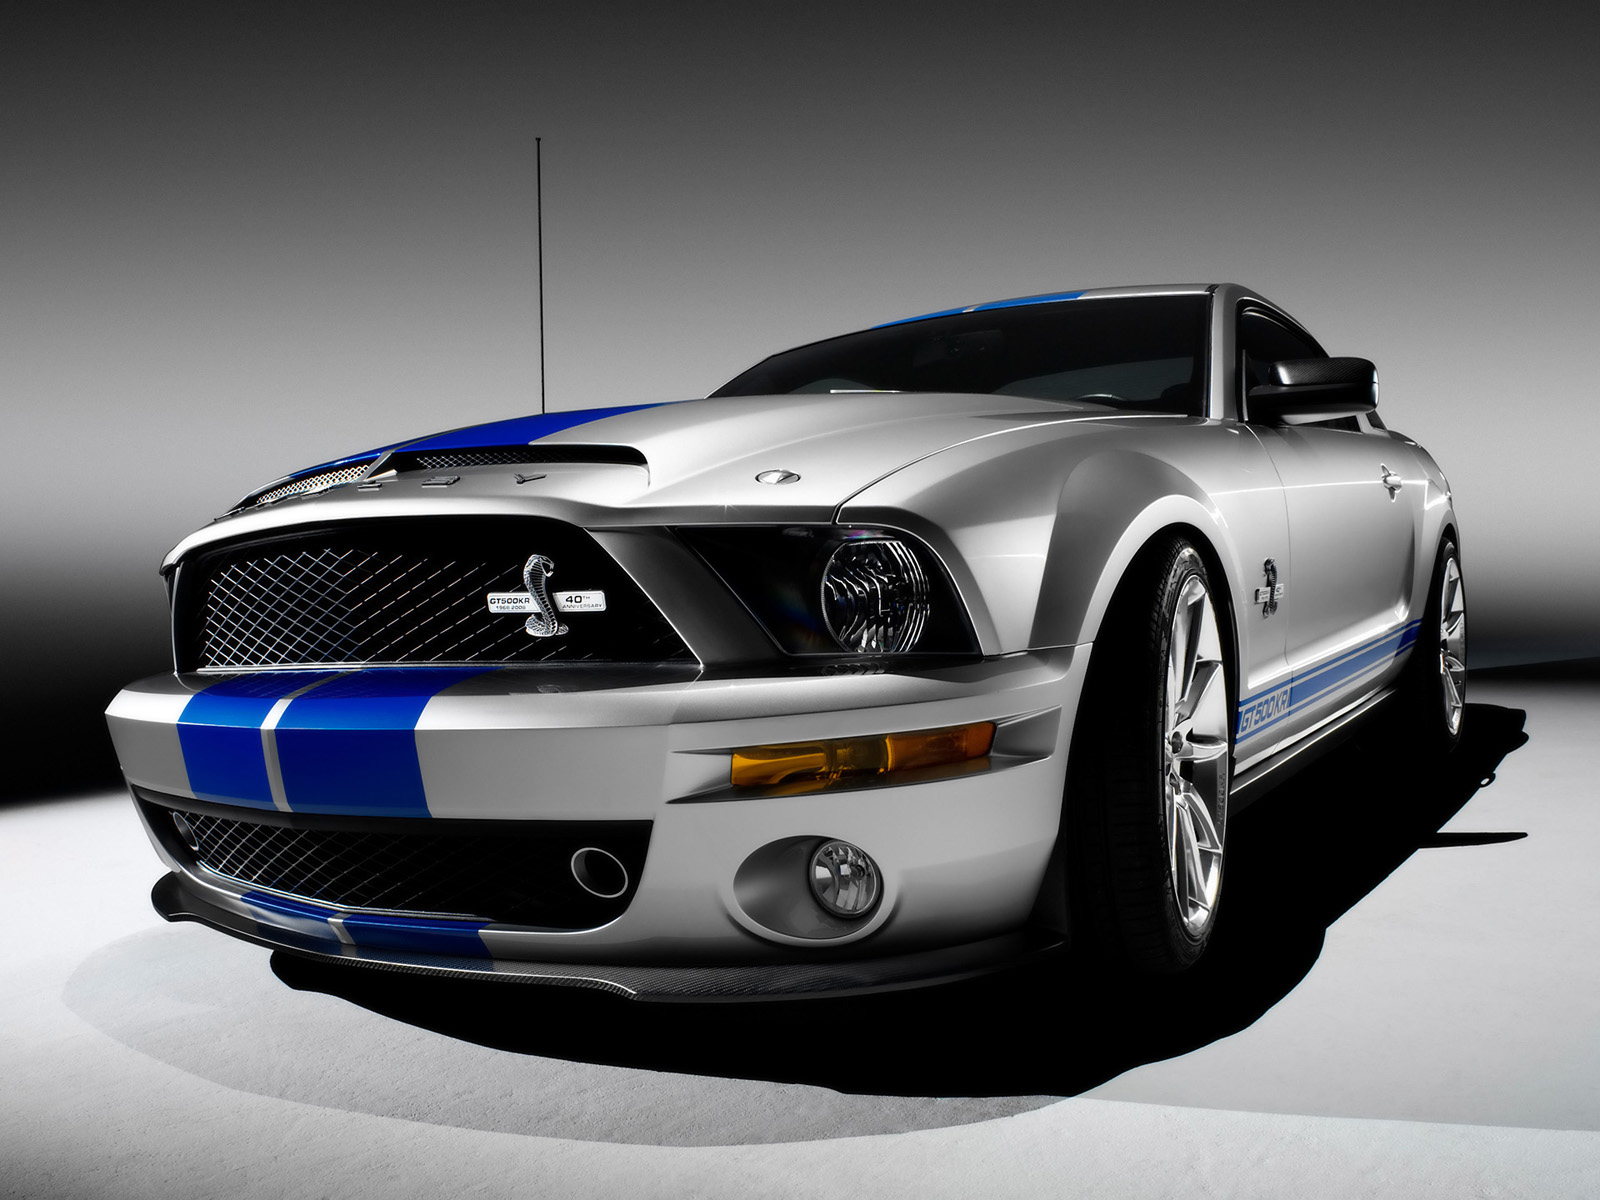 2017 Ford Mustang Shelby GT500KR photo - 3